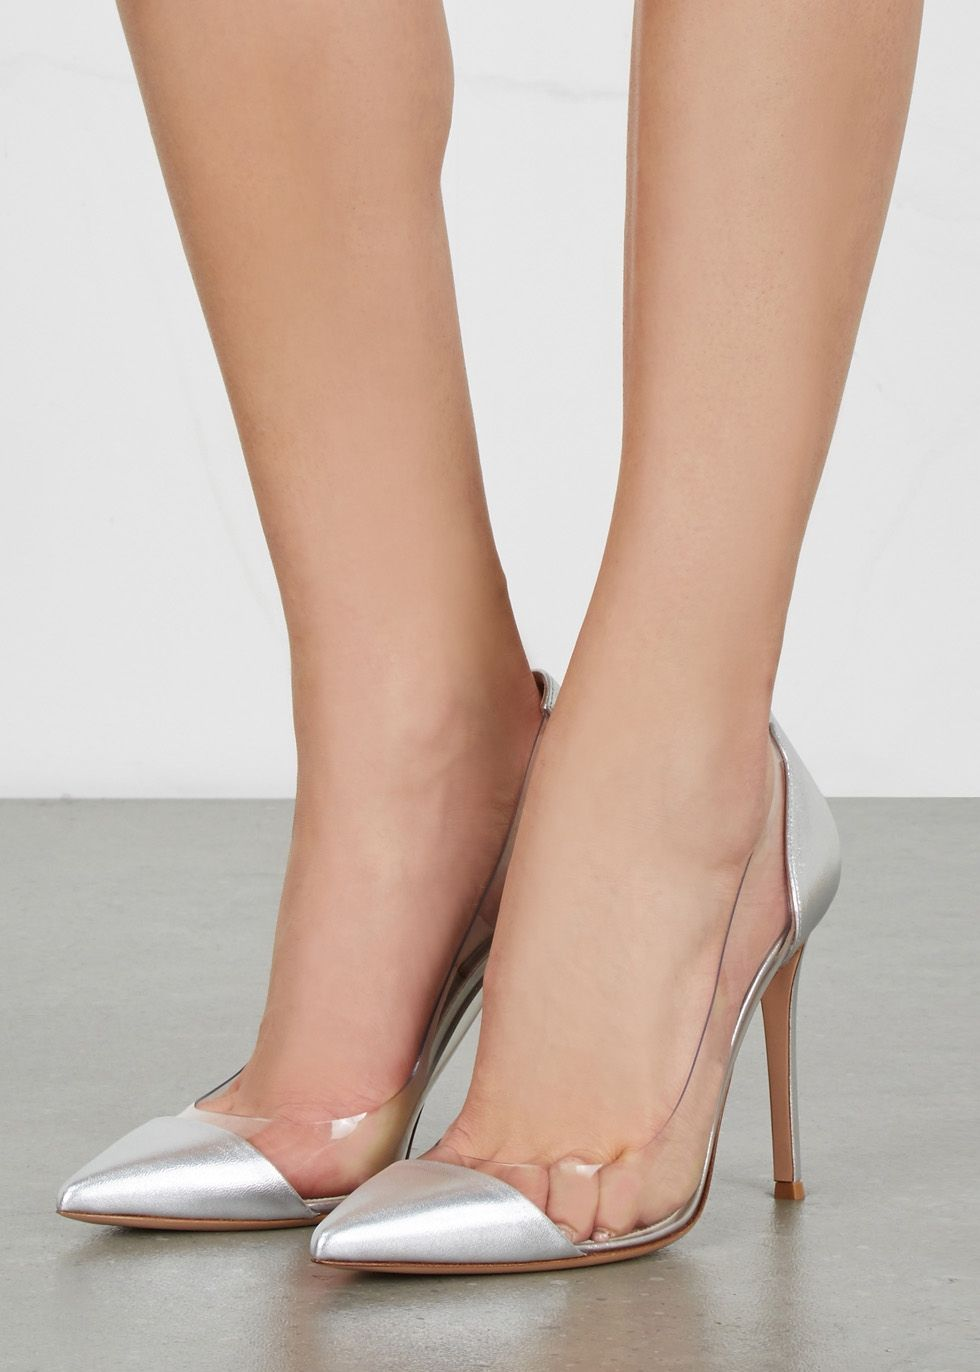 Gianvito Rossi Plexi Leather And Perspex Pumps Celebrity Shoes Sergio Rossi Shoes Fun Heels